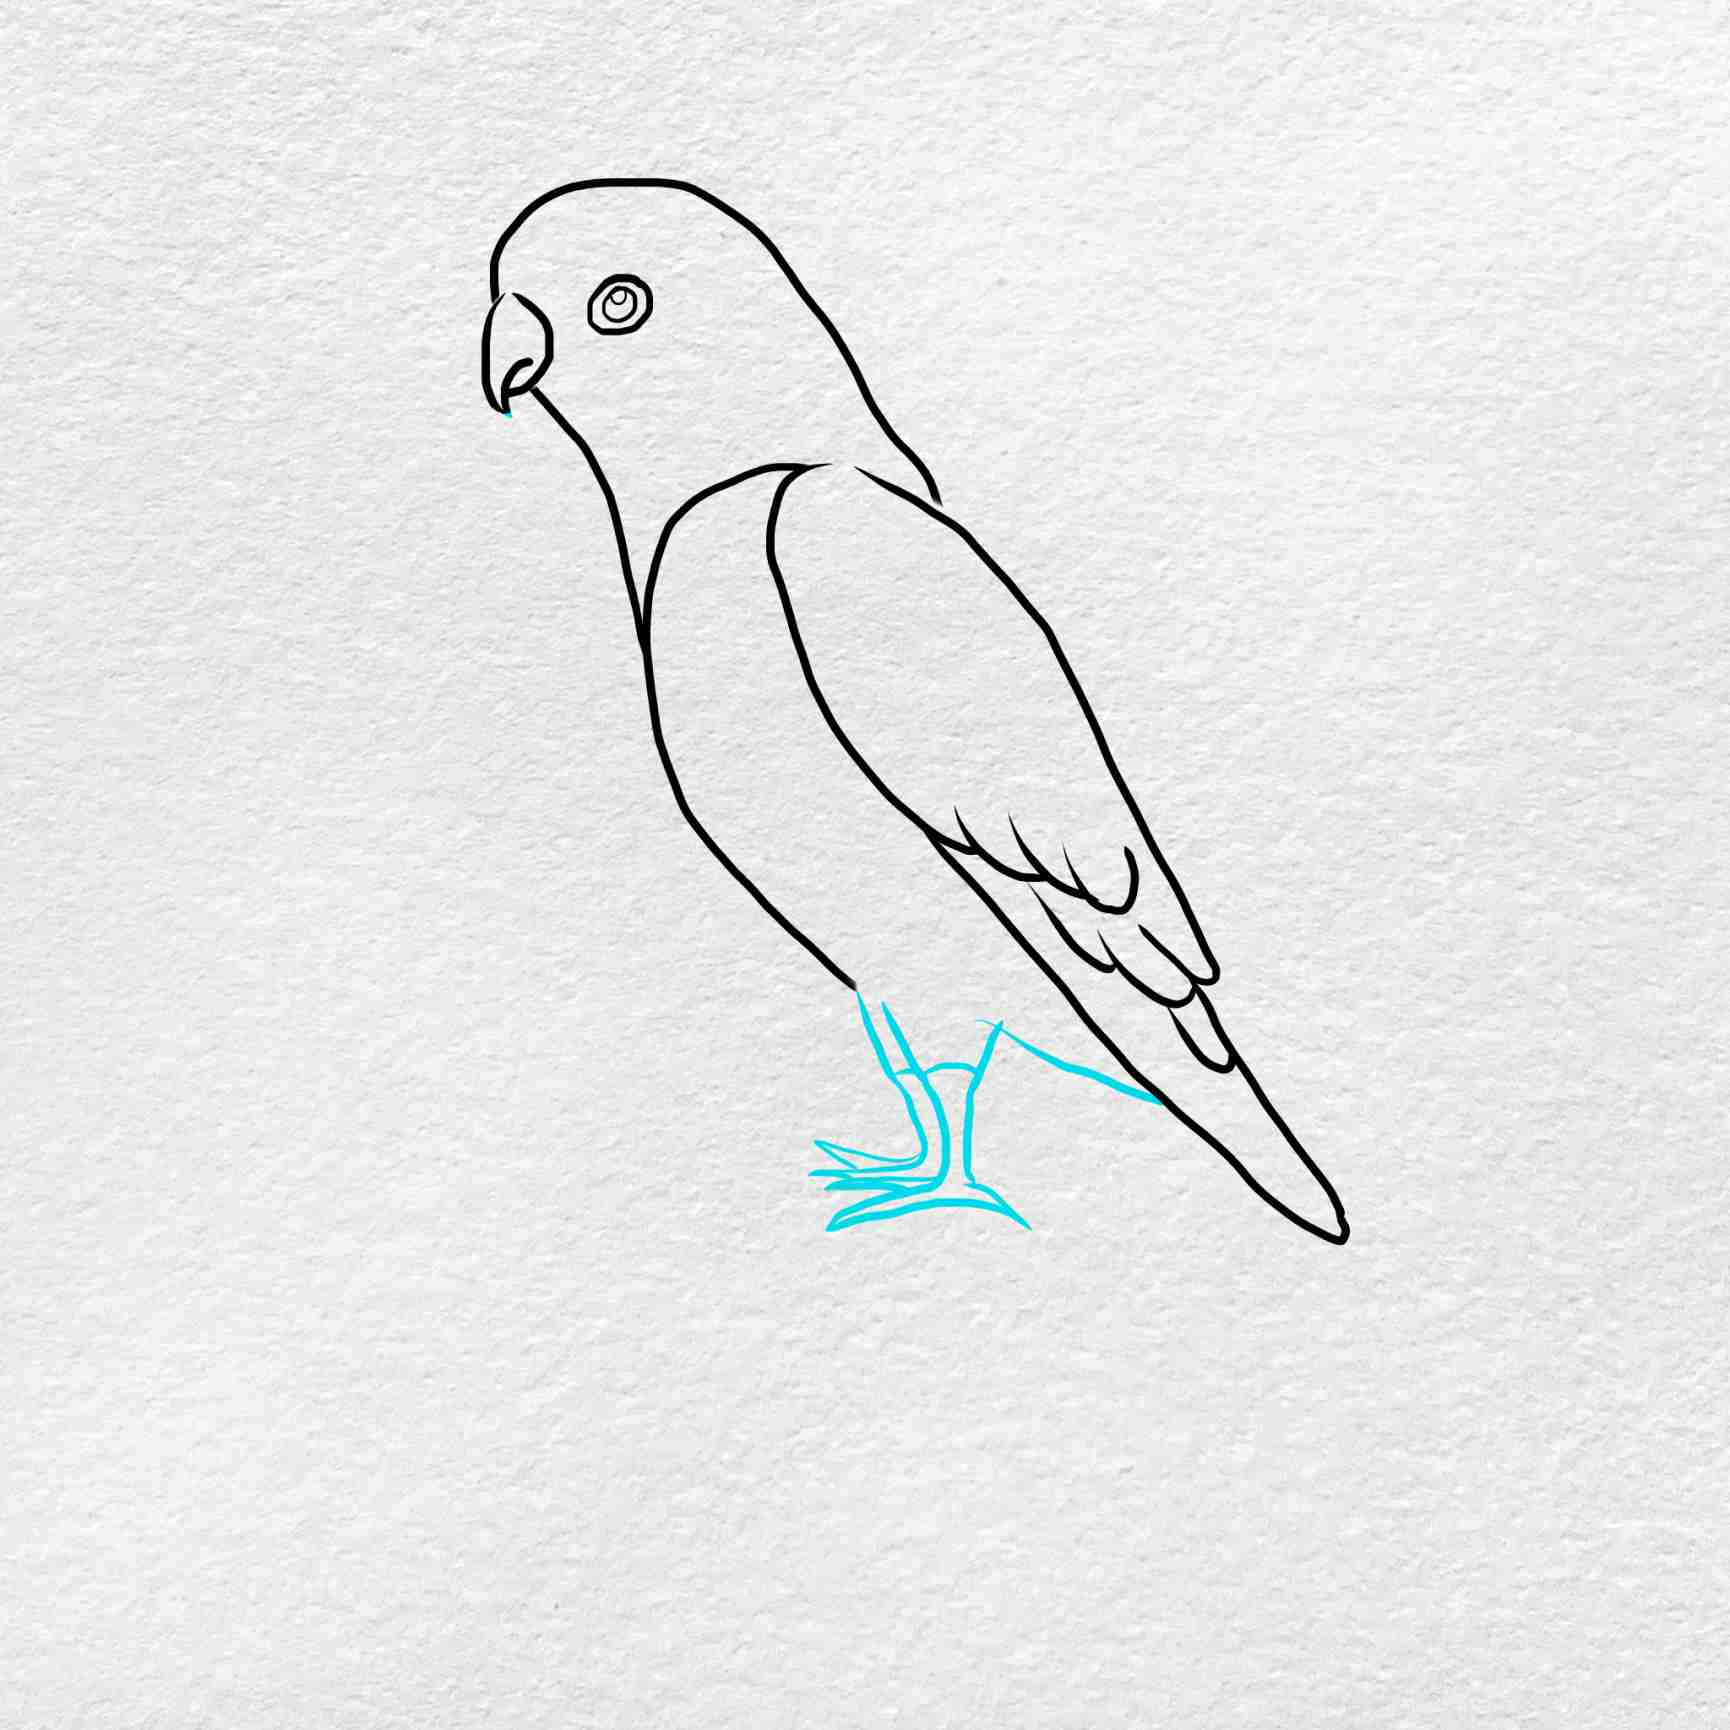 How To Draw A Parakeet: Step 5